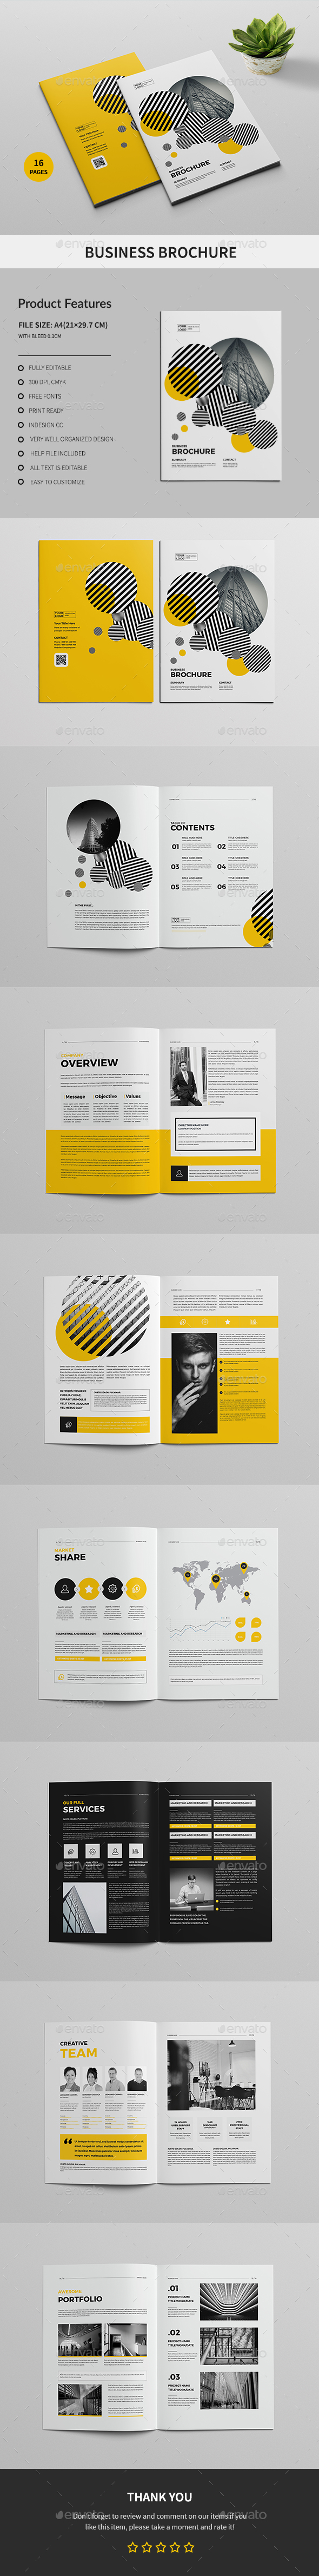 ِA4 Business Brochure - Corporate Brochures